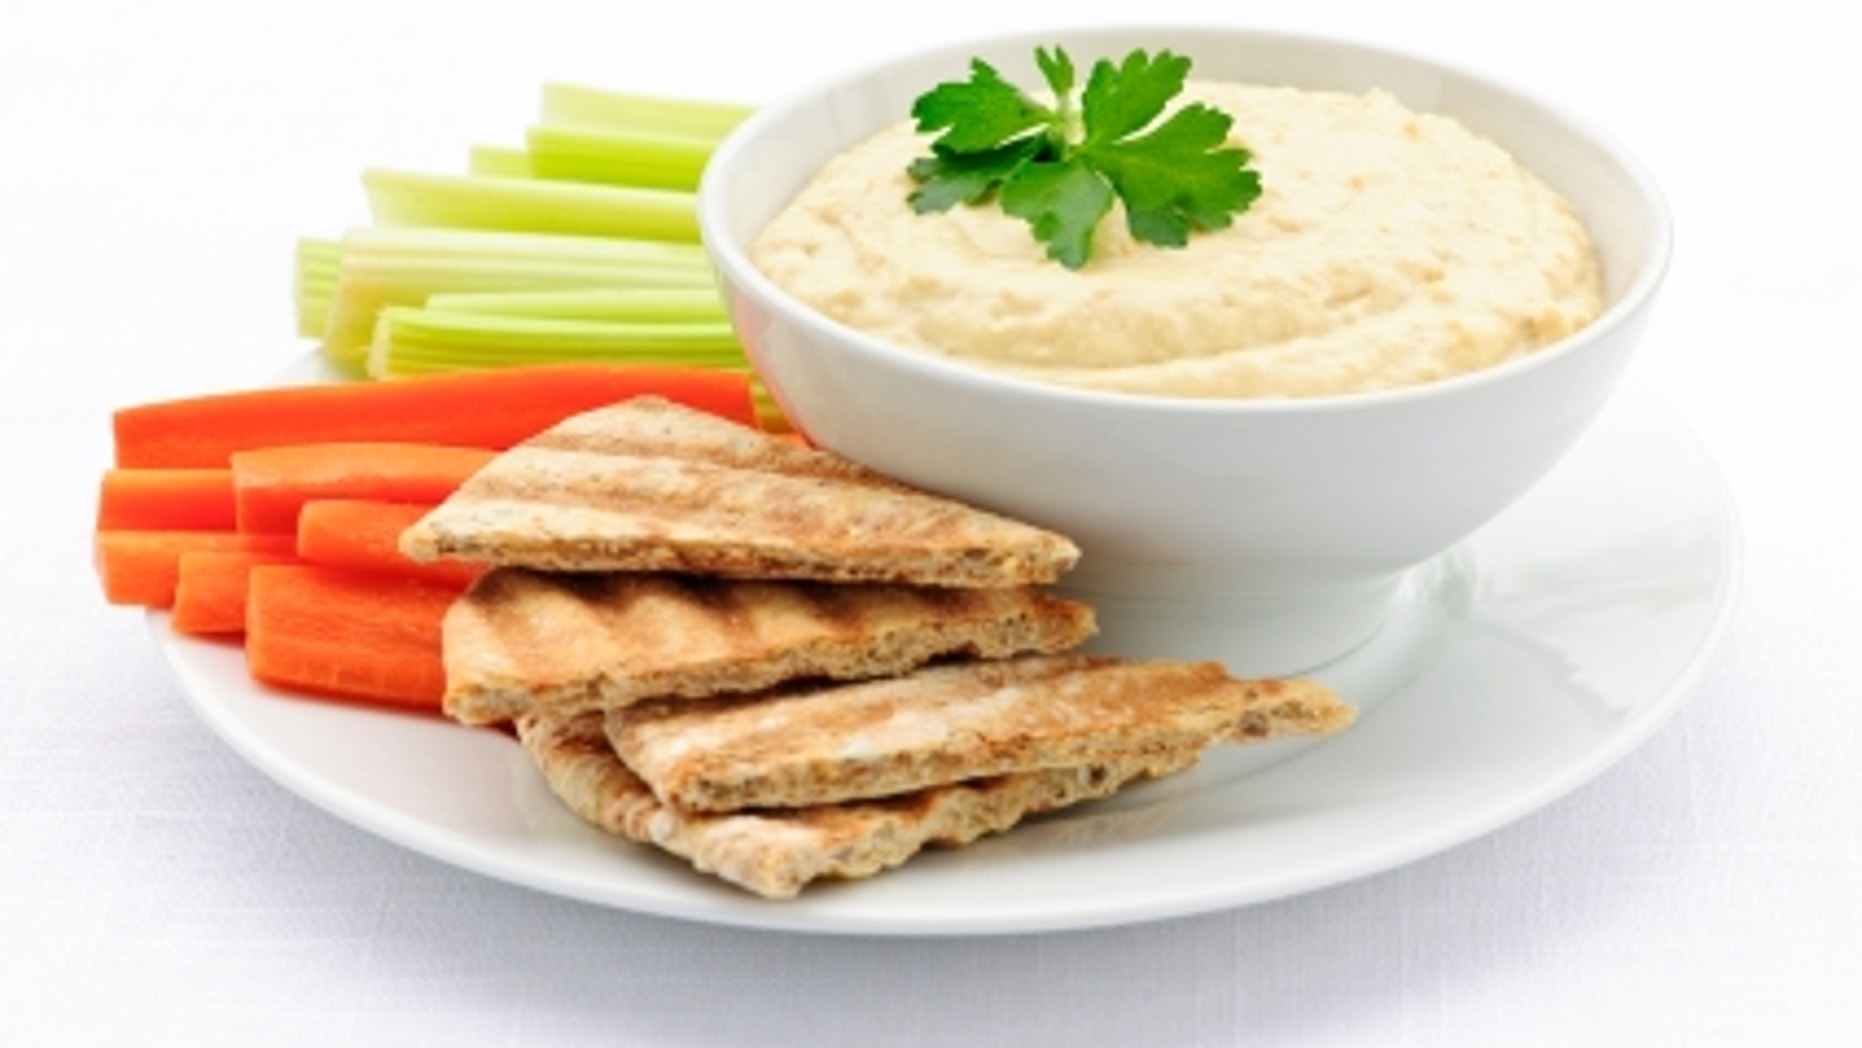 Healthy snack of hummus dip with pita bread slices and vegetables